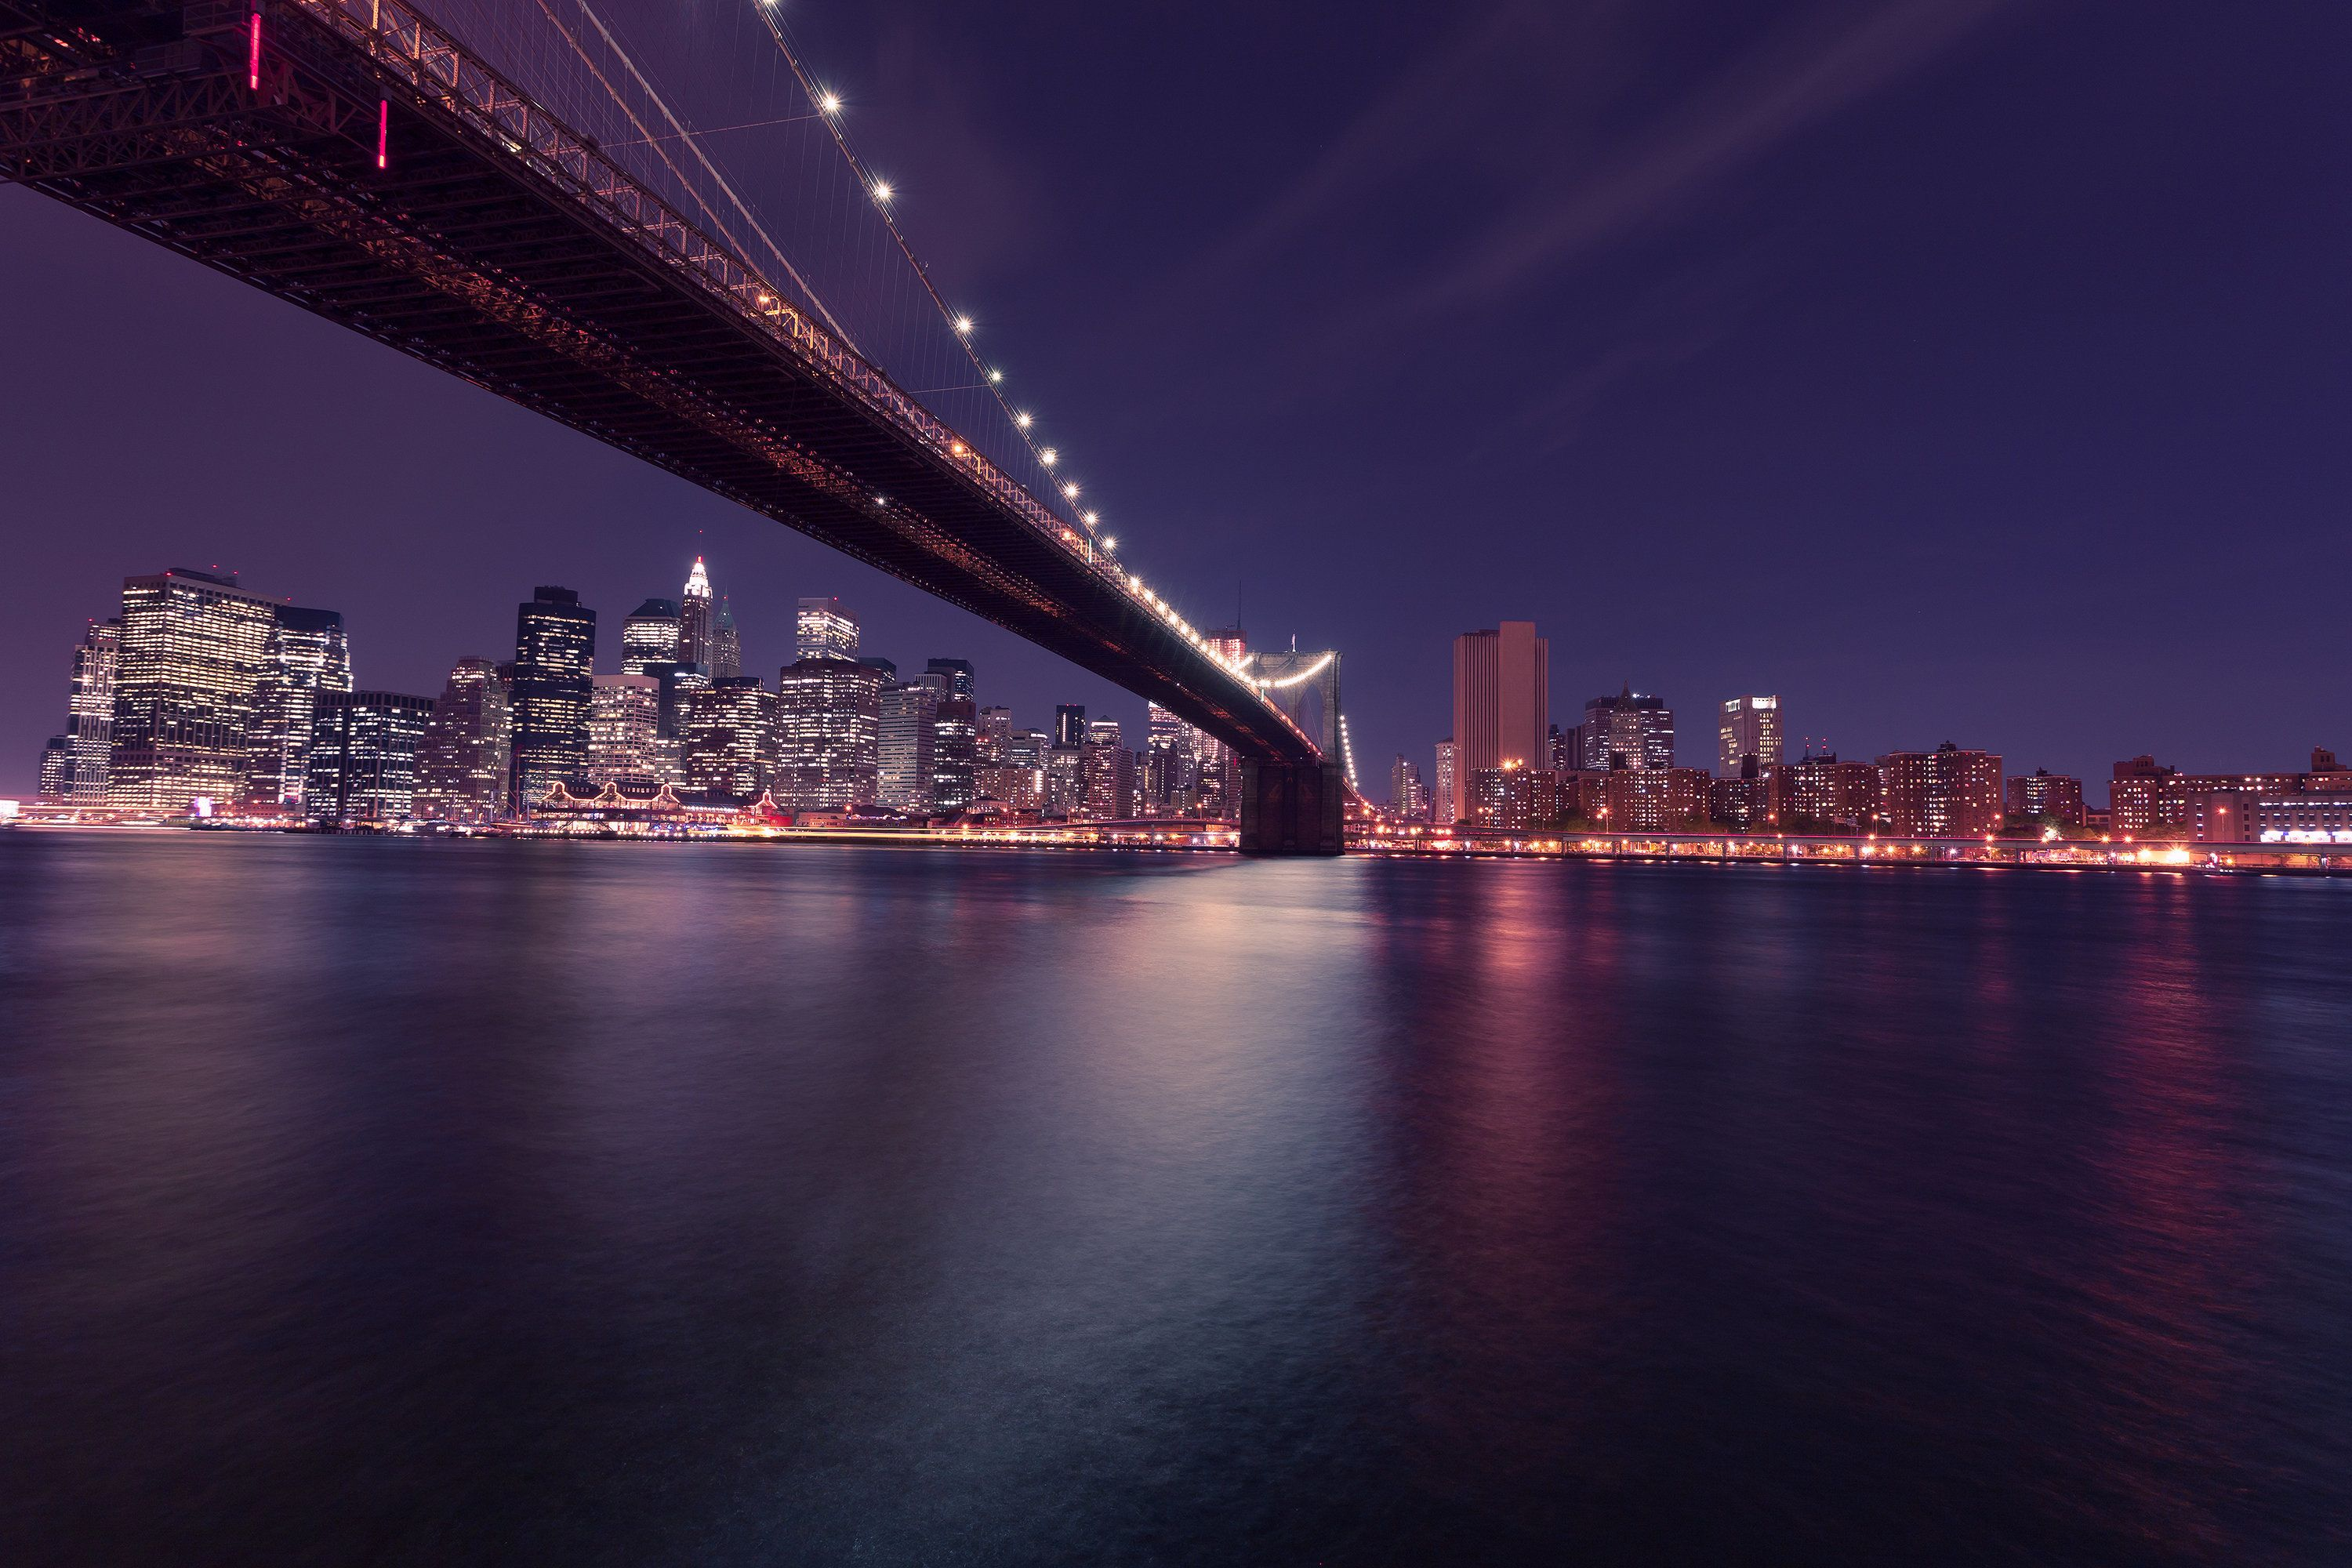 Dramatic New York City skyline with a cruise boat passing in the foreground. Beautiful New York City skyline at night. Lower Angle View of Manhattan and Brooklyn Bridge in New York at nighttime.